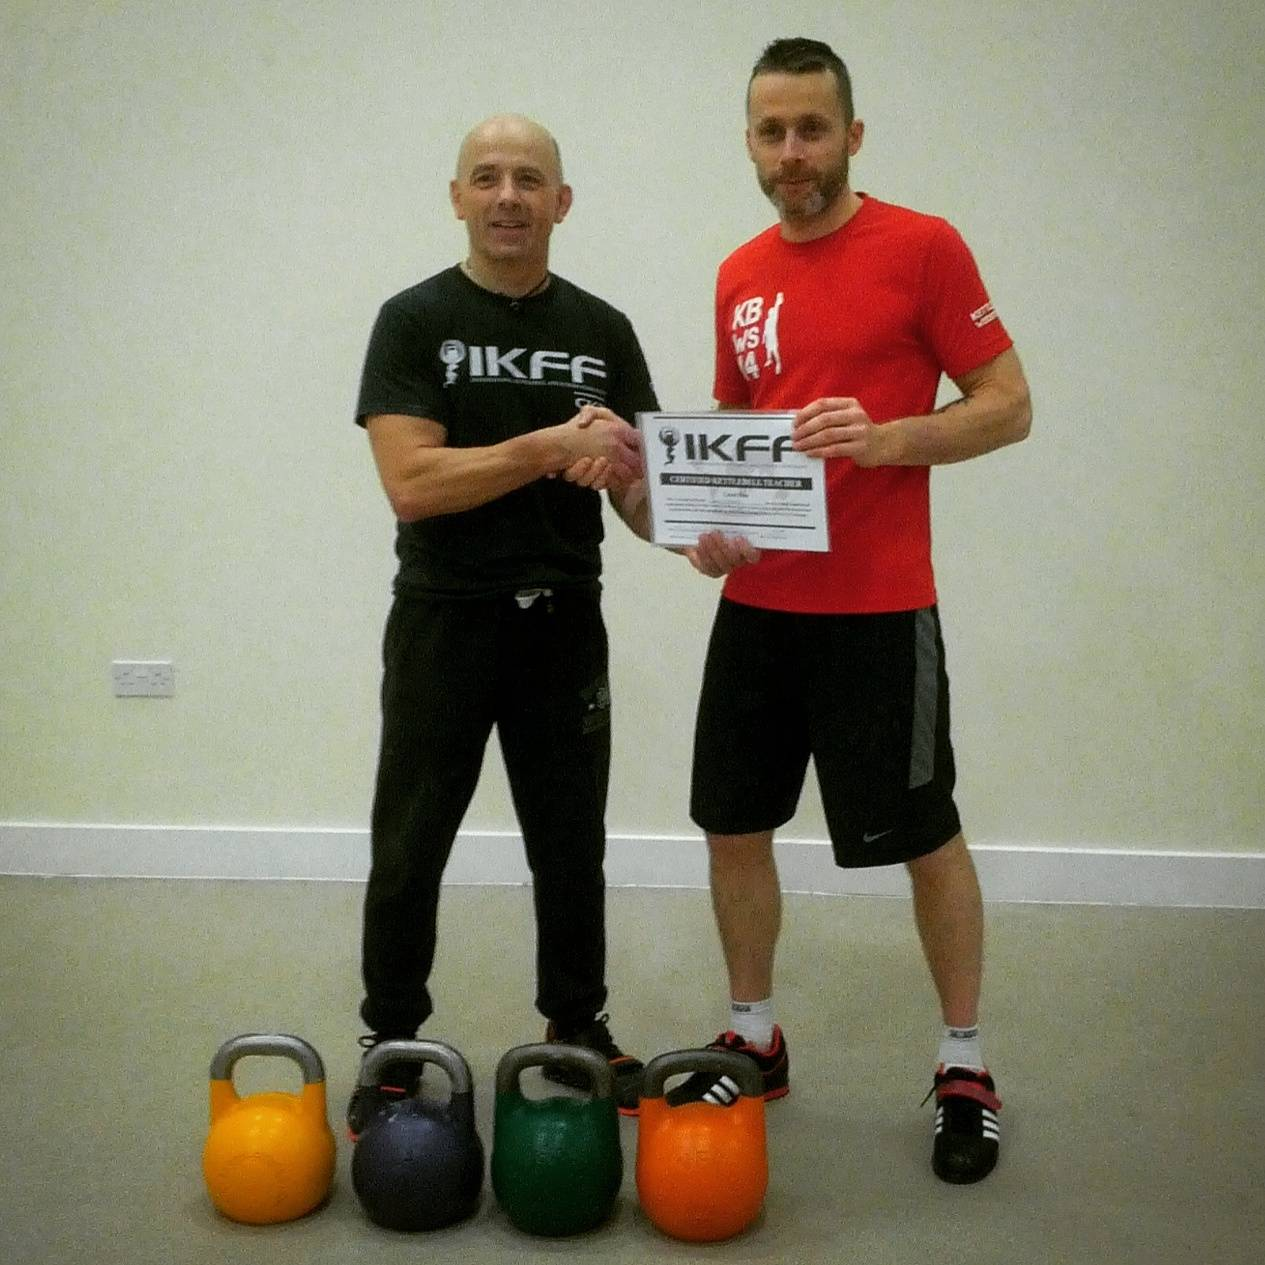 IKFF Certified Kettlebell Trainer – Barry Andre